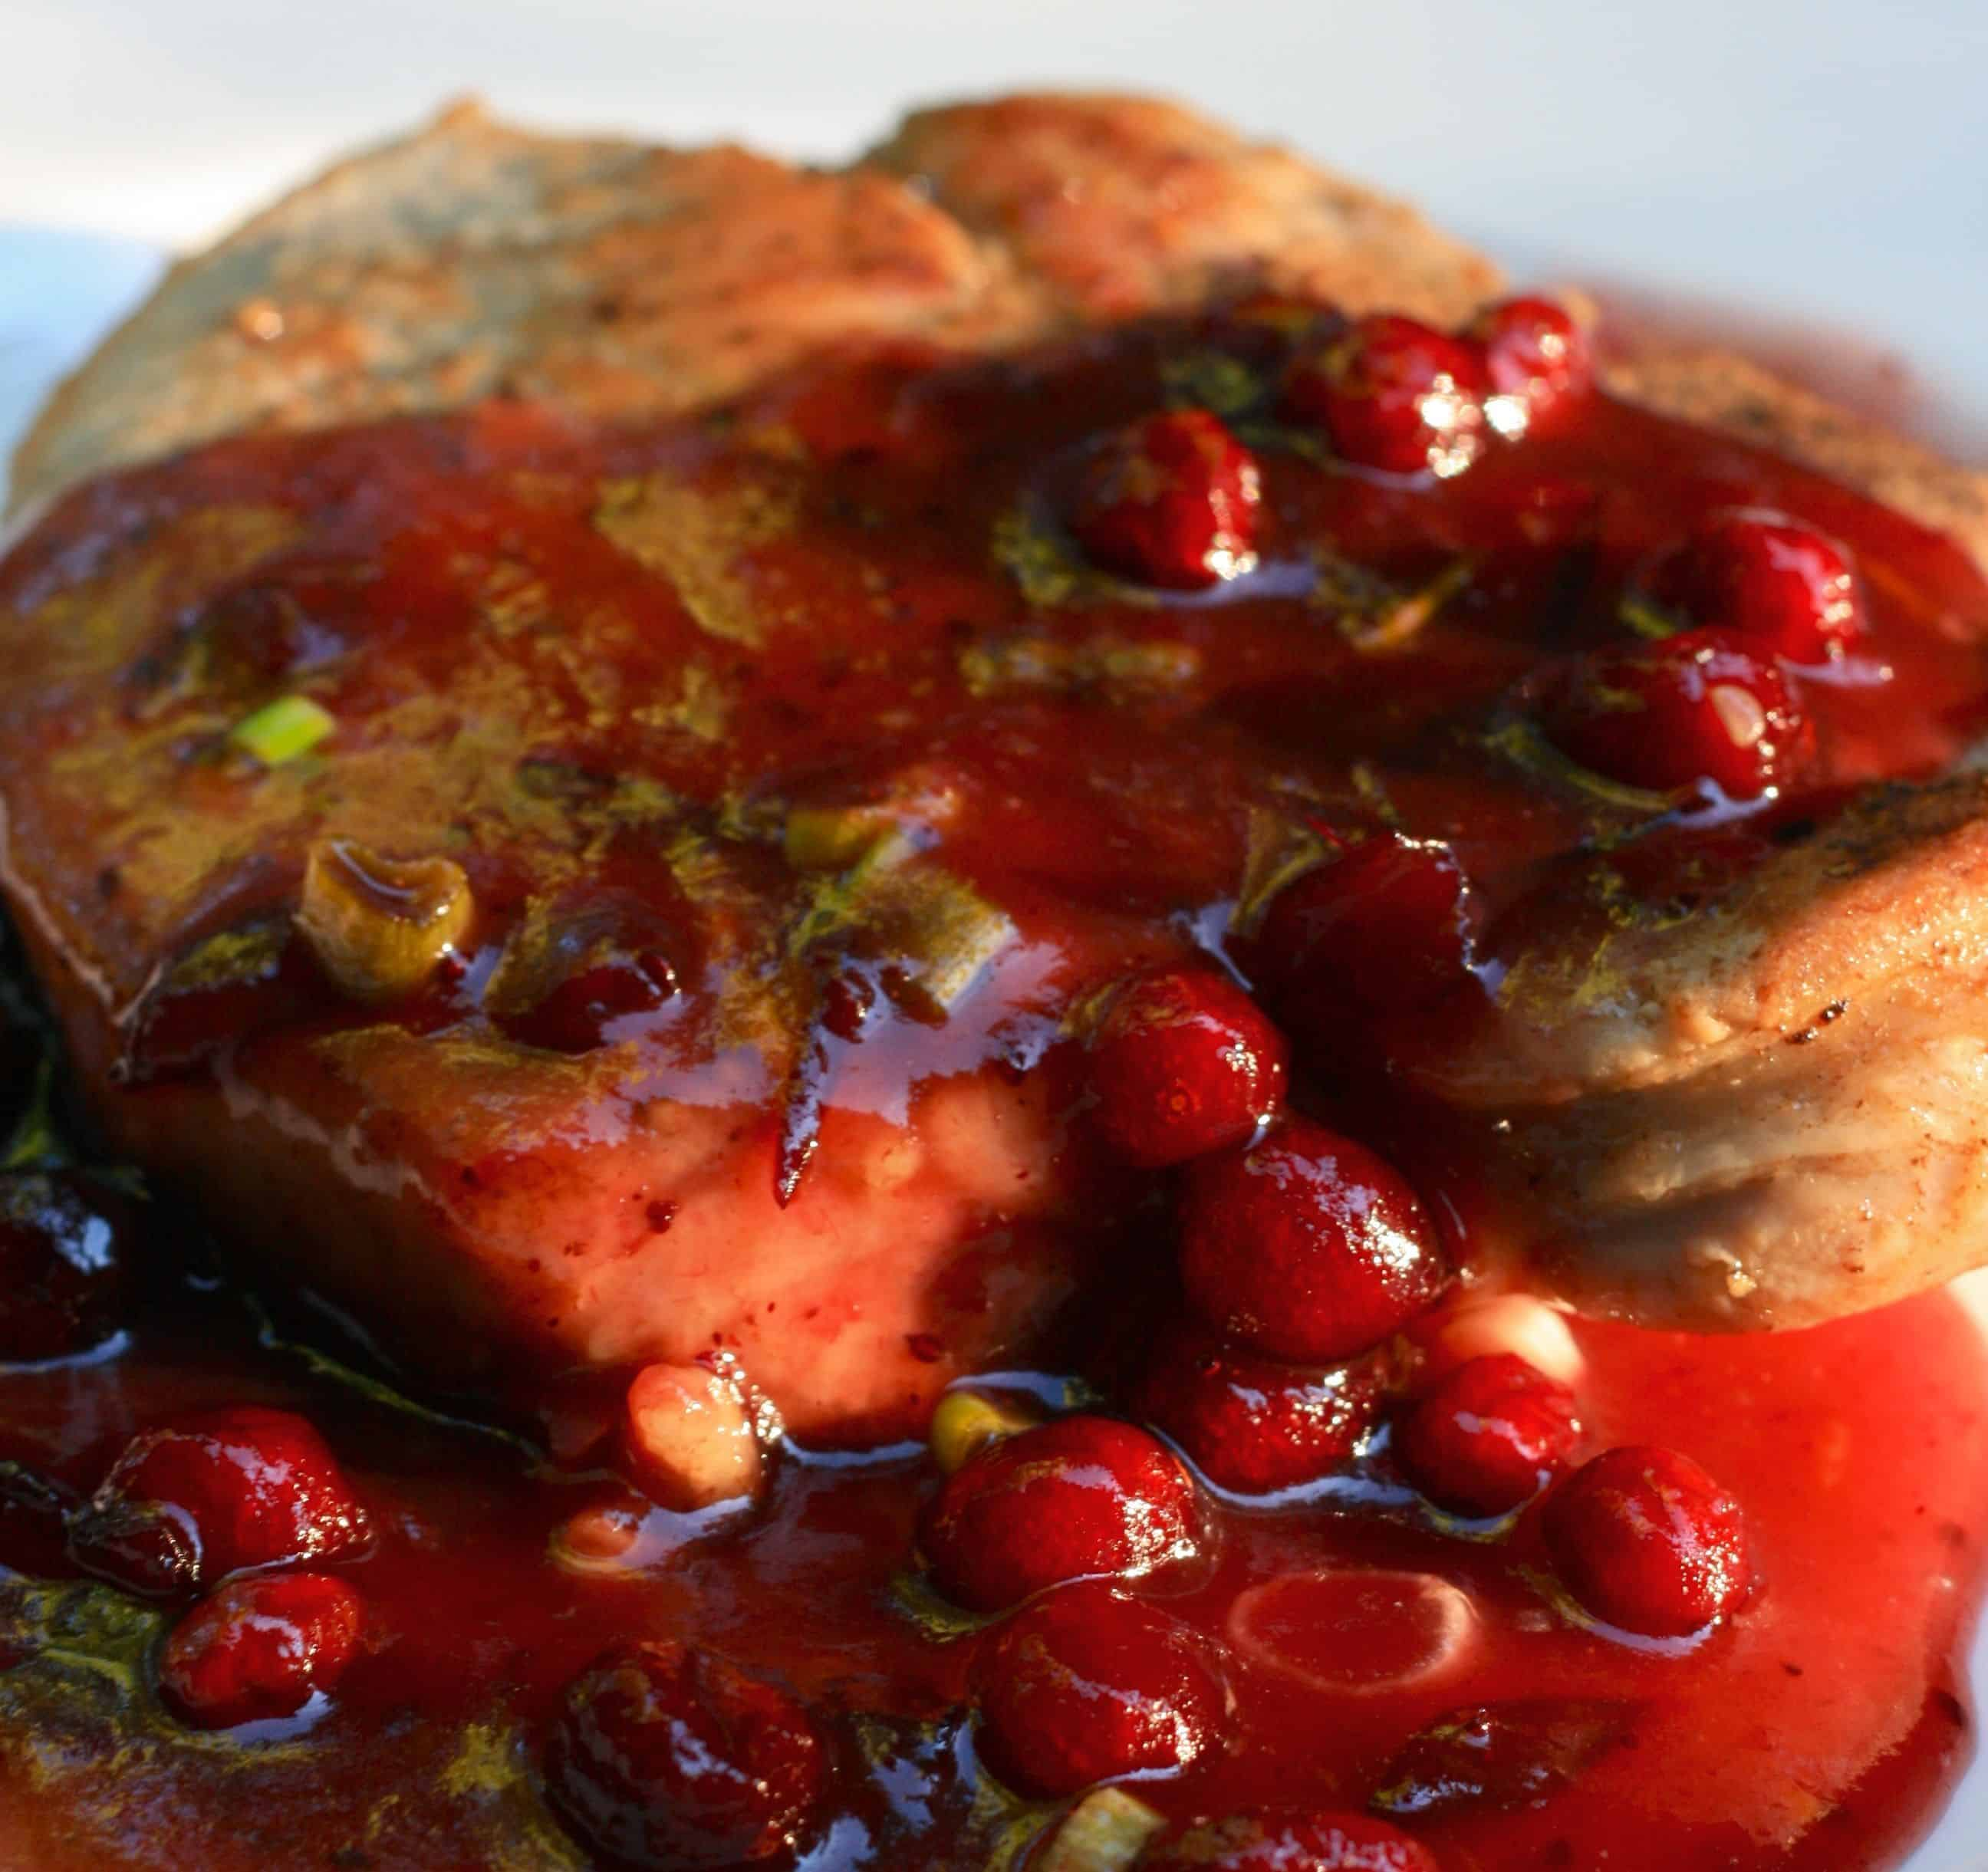 Easy Crockpot Recipes for Fall - Cranberry Pork